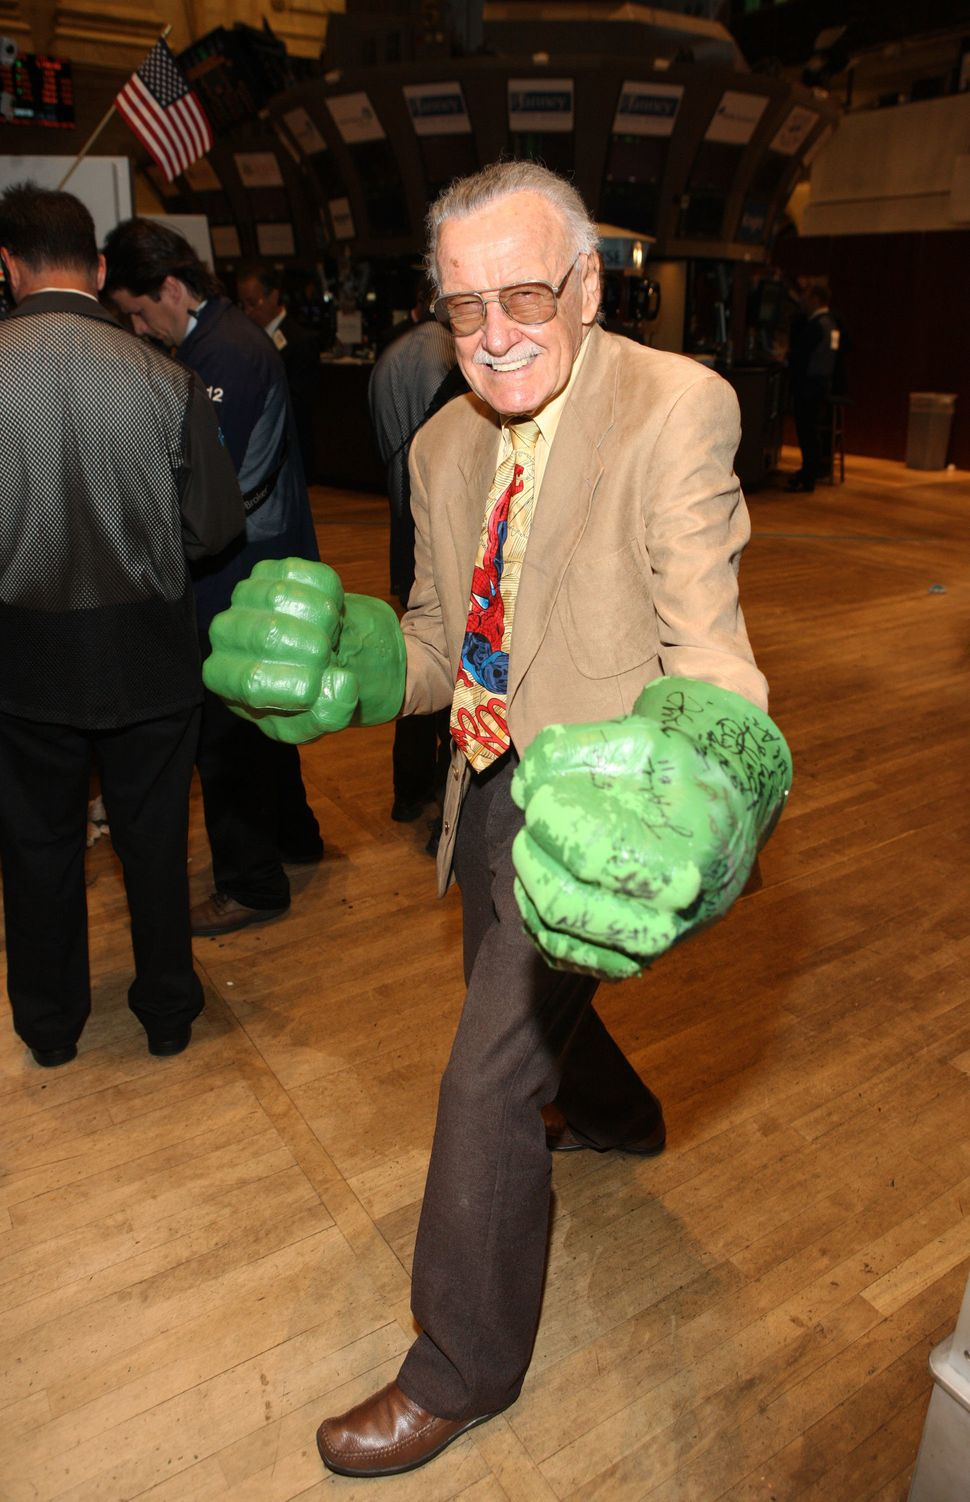 Cartoonist Stan Lee visits the New York Stock Exchange on Oct. 5, 2010, in New York City.